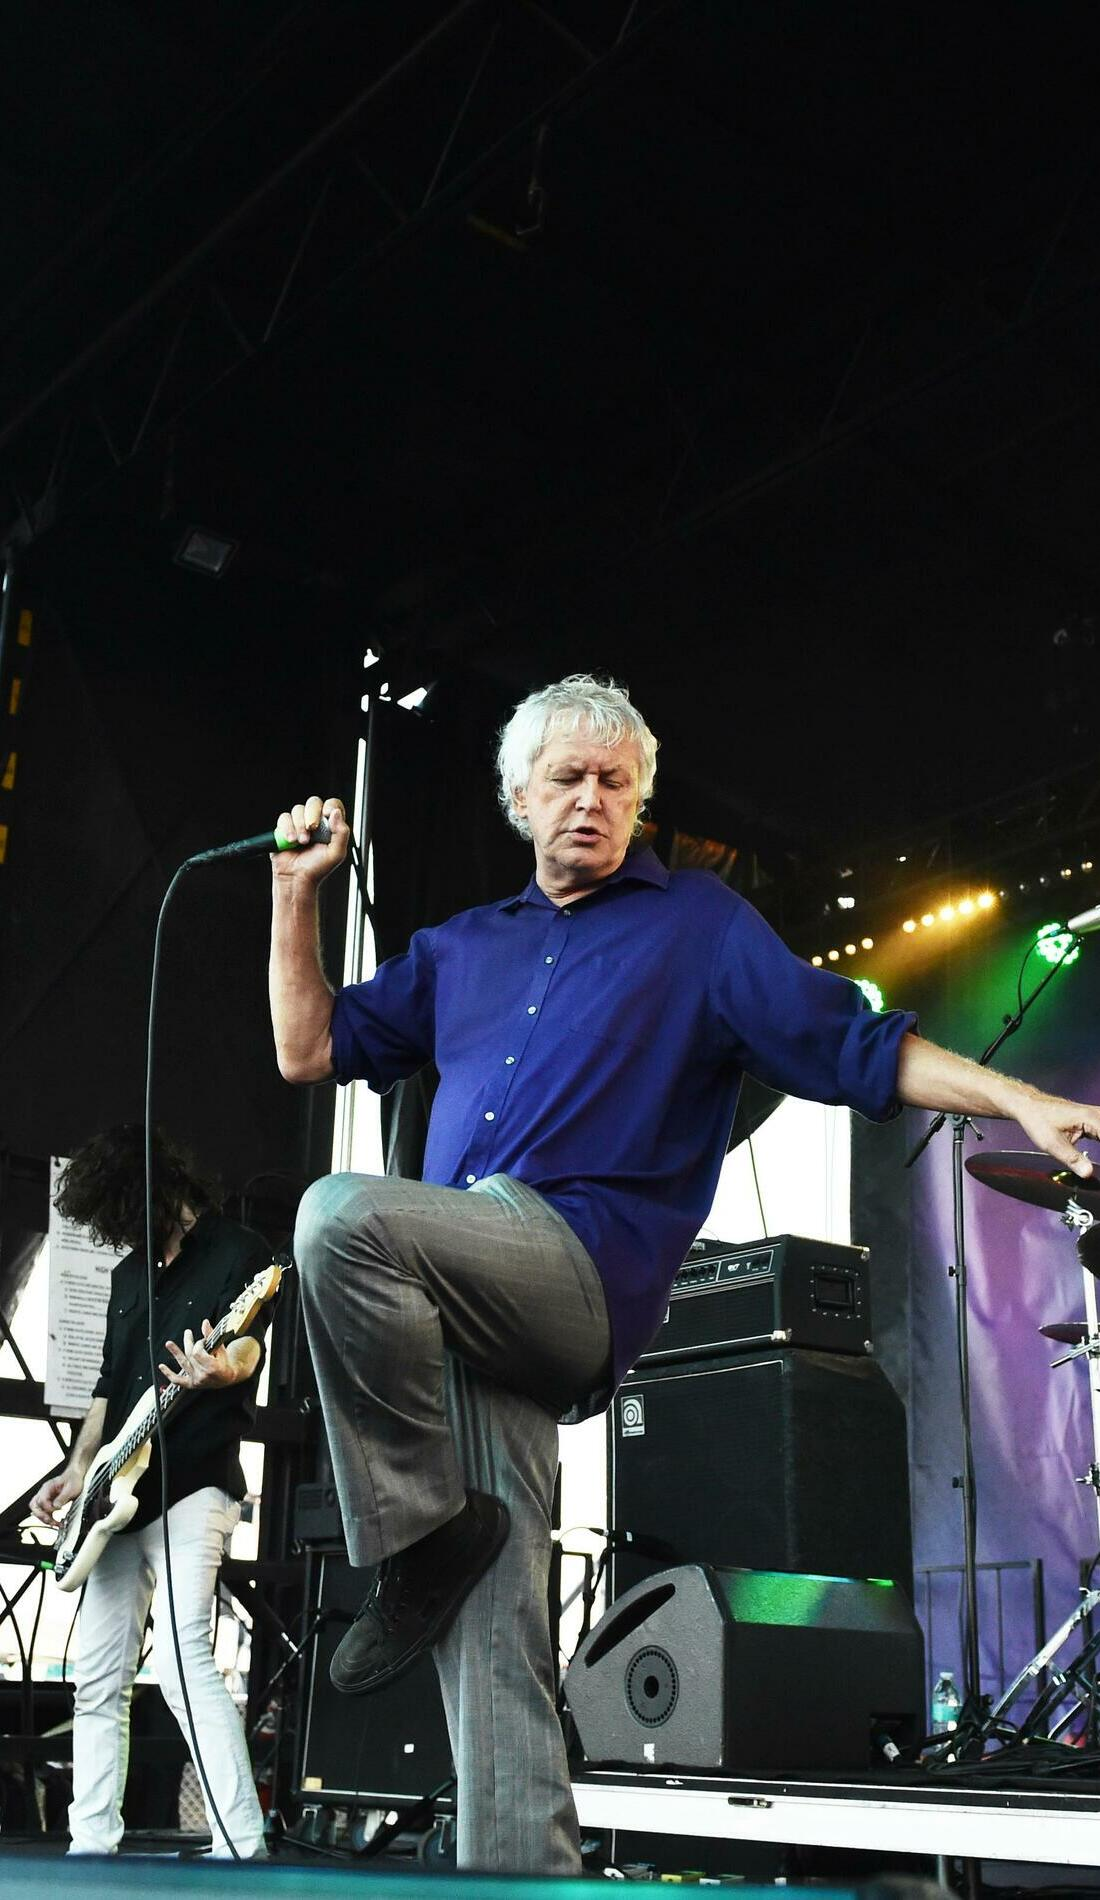 A Guided By Voices live event